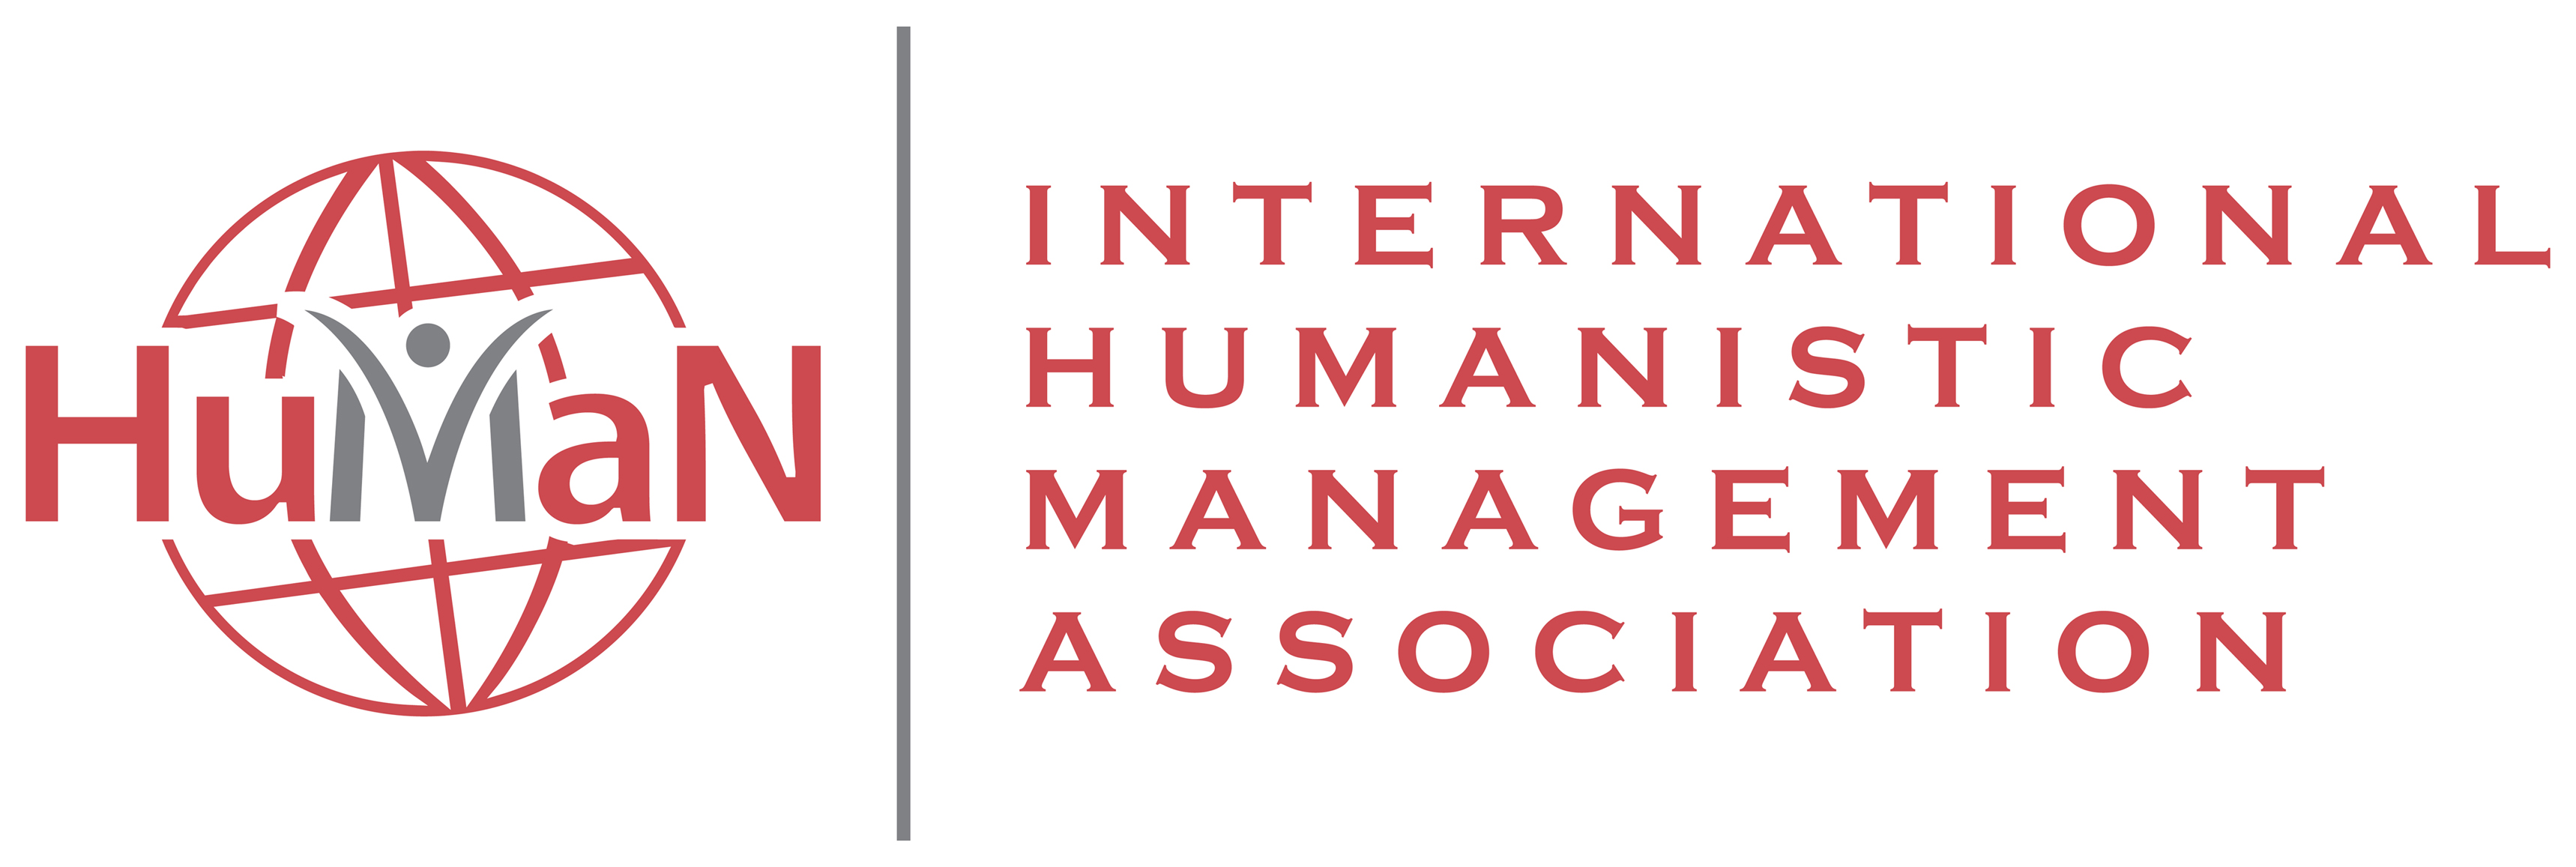 International Humanistic Management Association